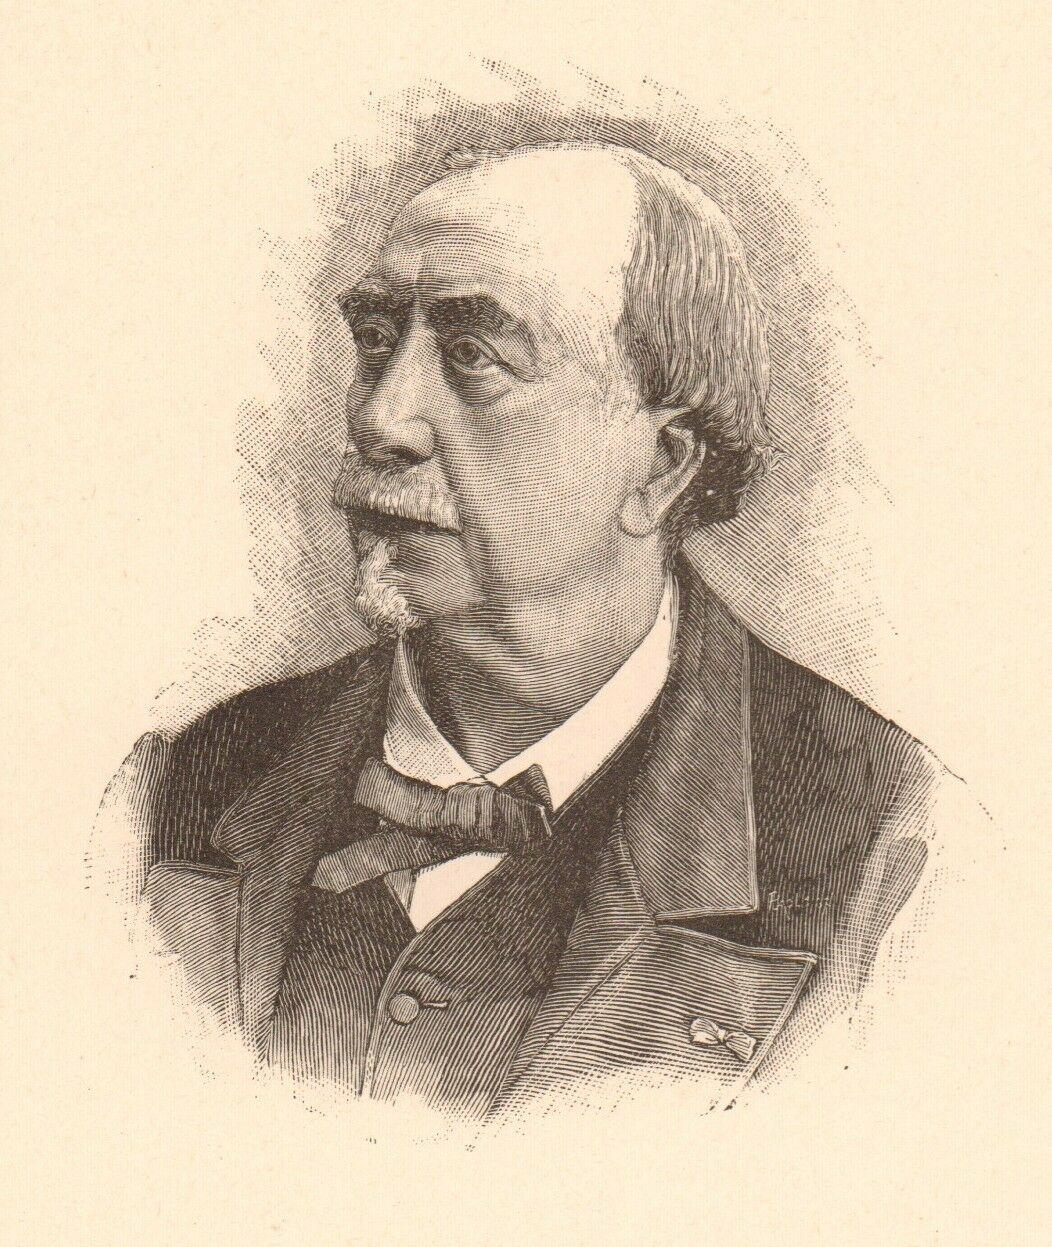 Louis Figuier French scientist and writer